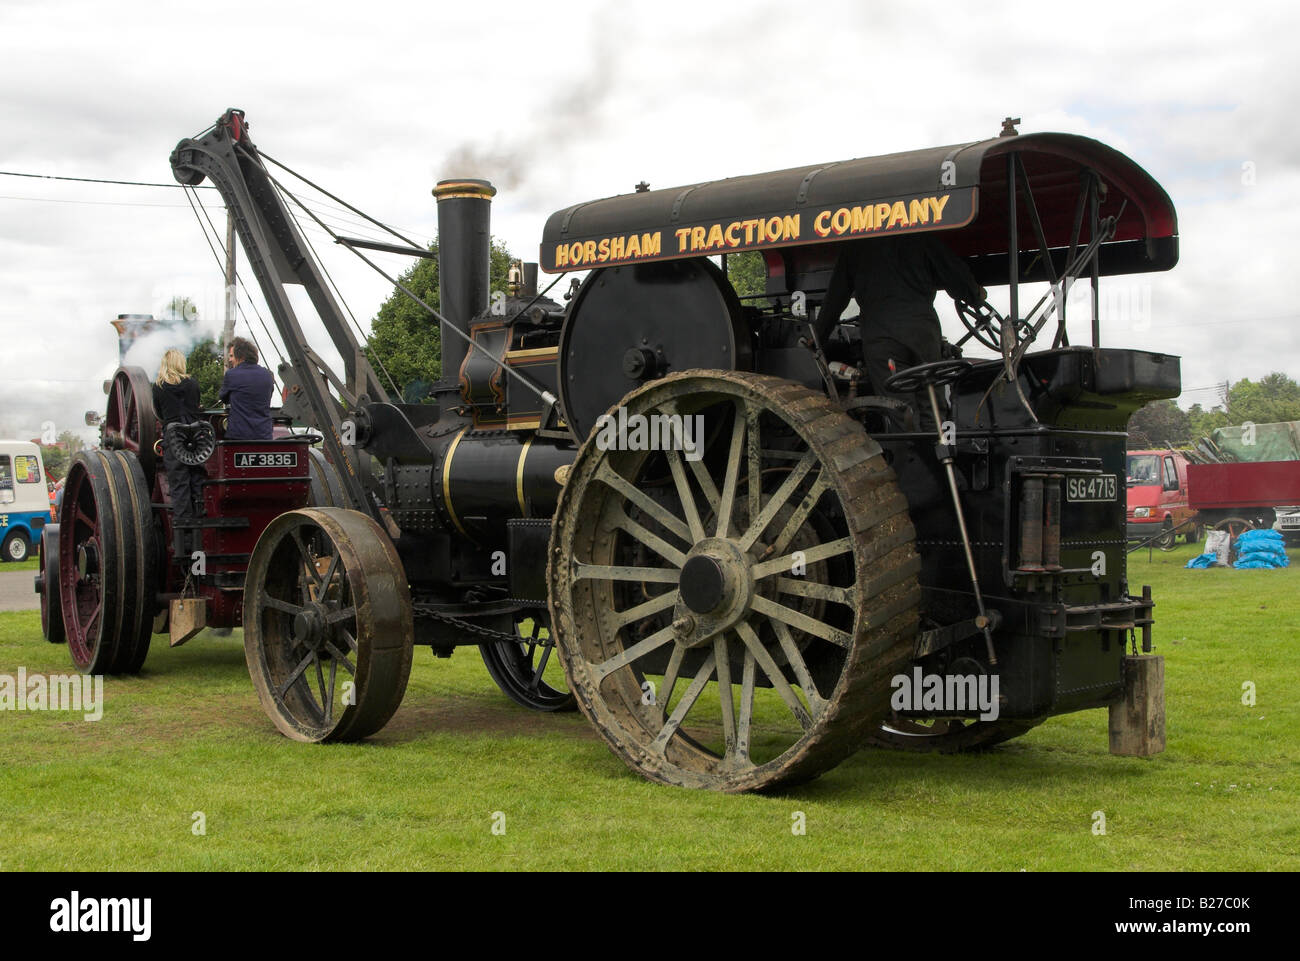 A Fowler B5 8nhp Crane Engine built in 1901 being towed by a Burrell 6nhp General Purpose Traction Engine built - Stock Image